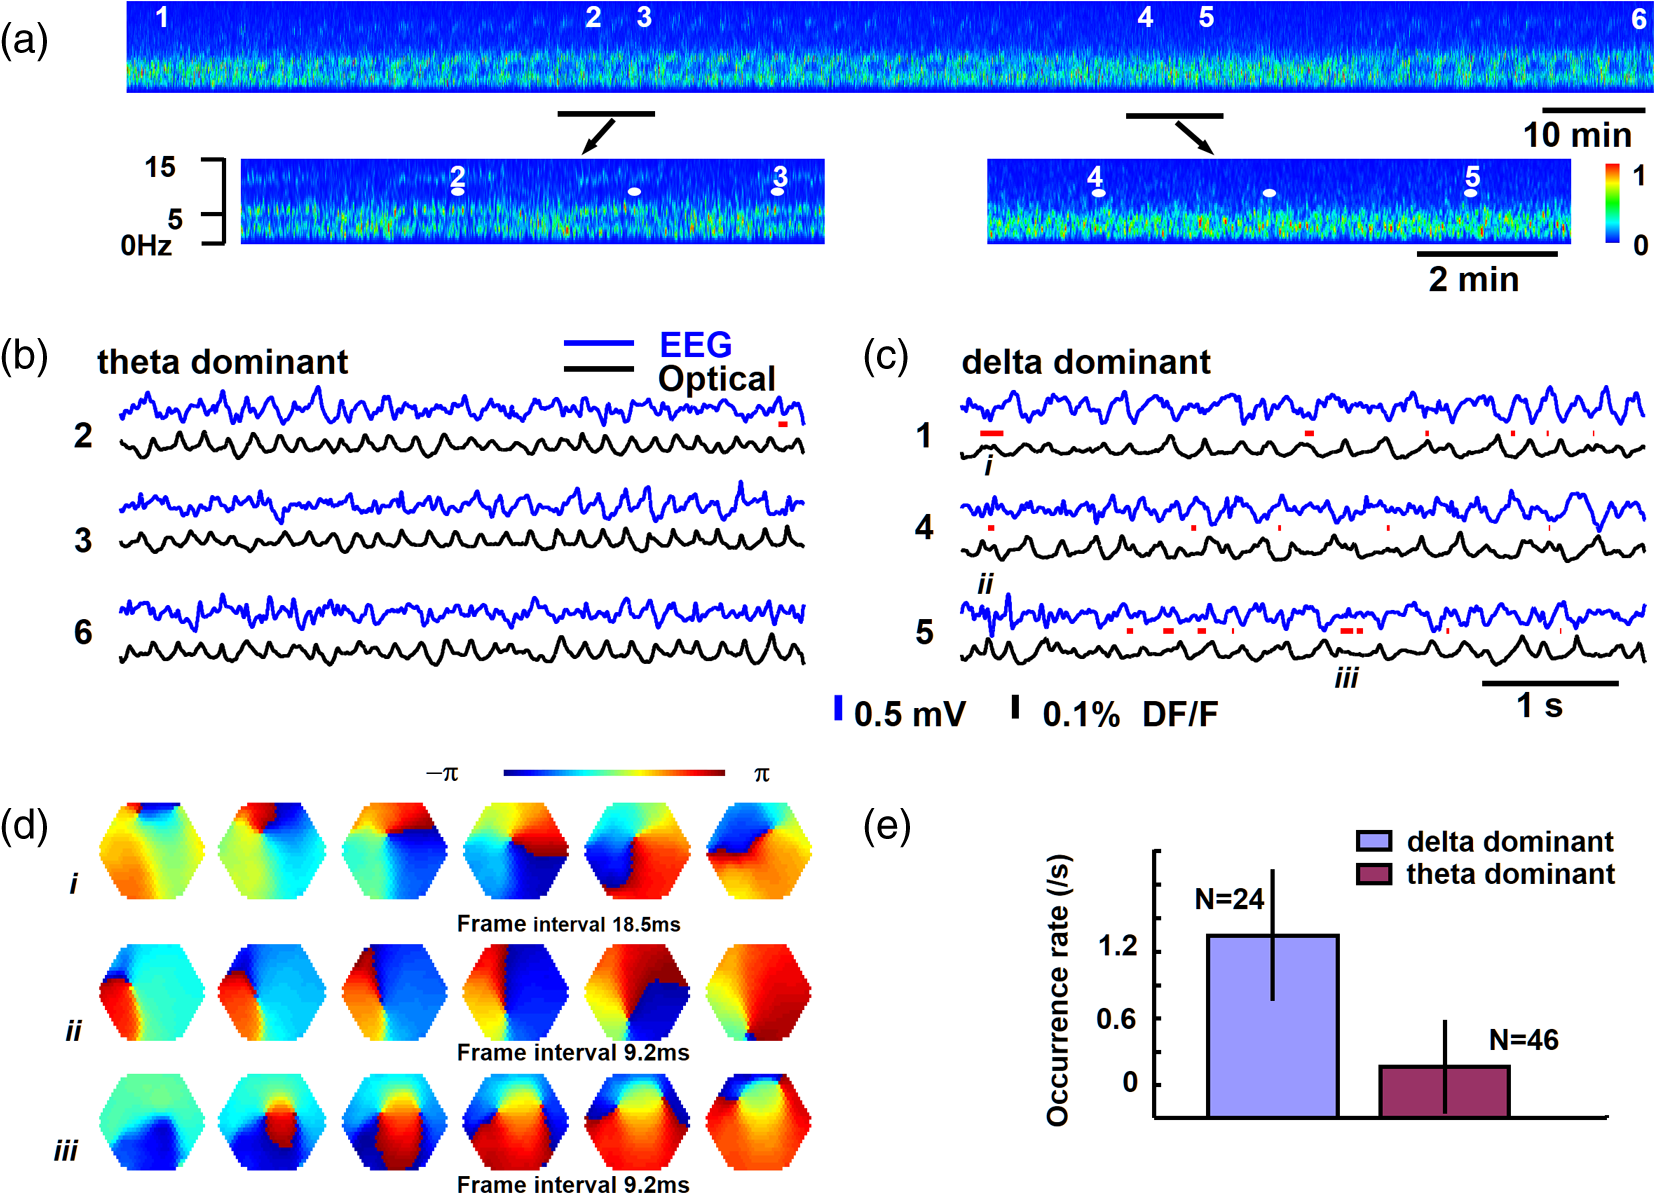 Blue Voltage Sensitive Dyes For Studying Spatiotemporal Dynamics In Of Electrical Panels Understanding The Relationship Star Delta Imaging Area Is 4 Mm Diameter E Rate Occurrence Spiral Waves During Sleep Like States Modified From Ref